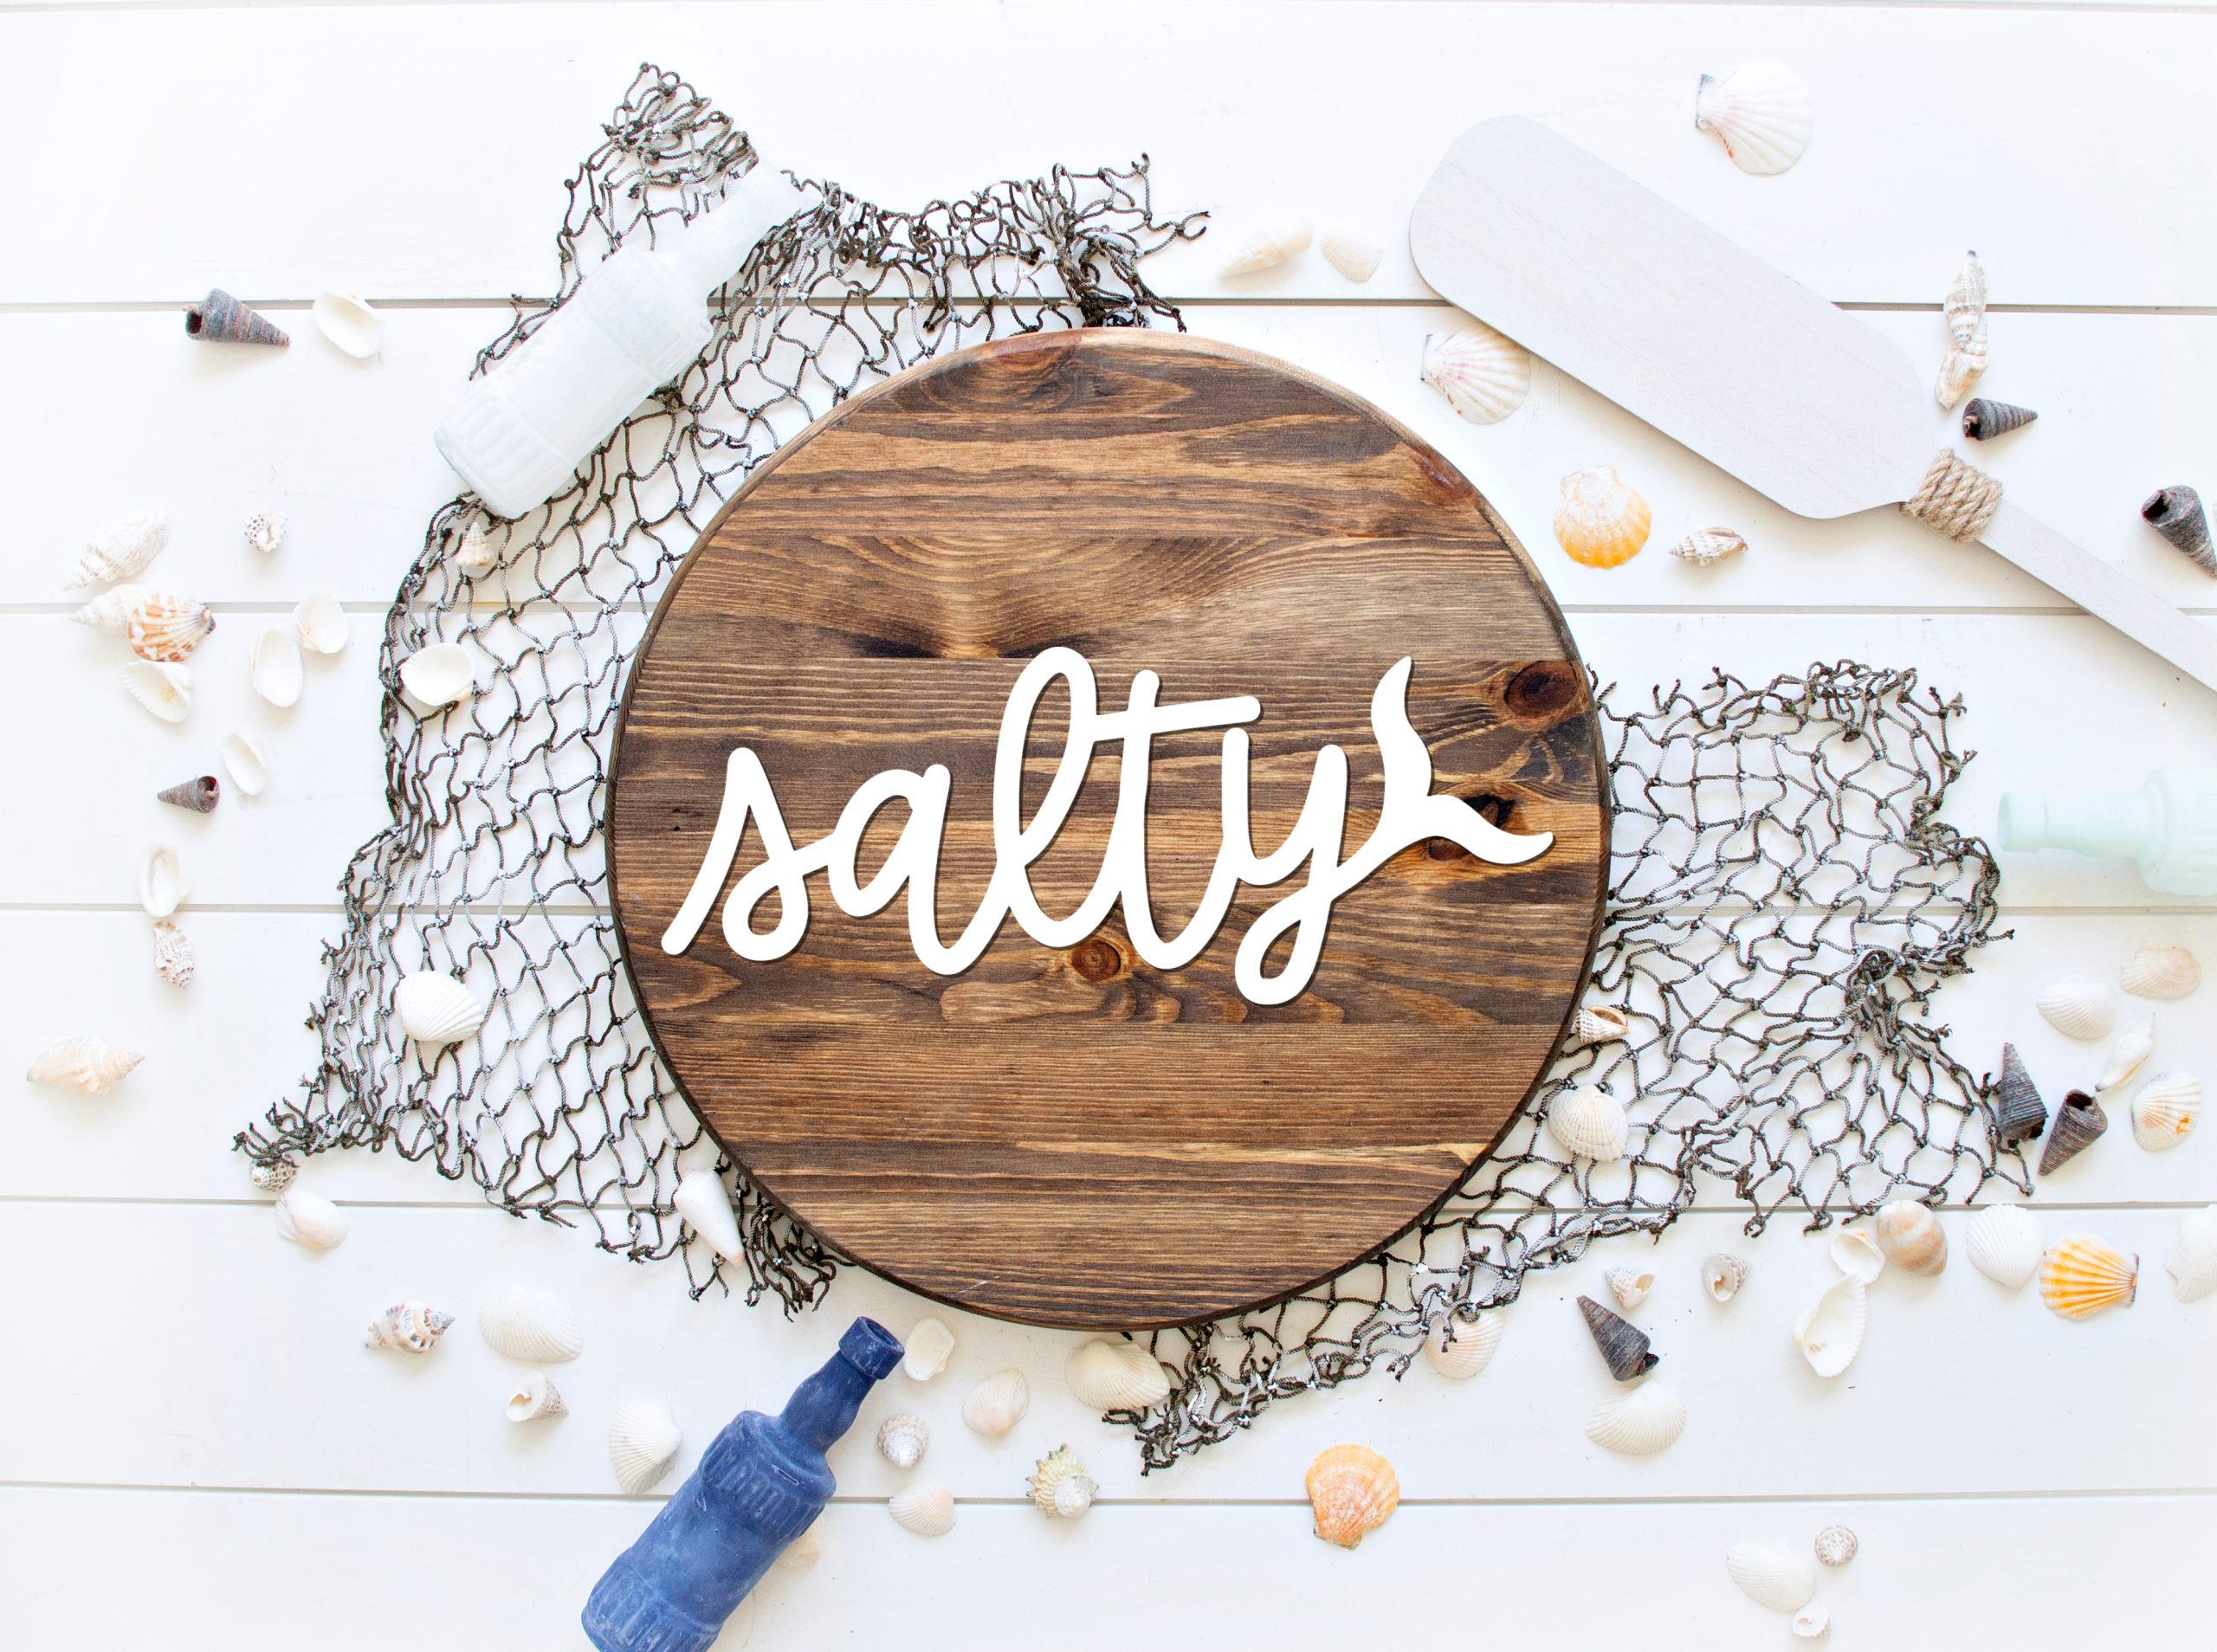 Salty SVG on a wood circle sign with beach decorations